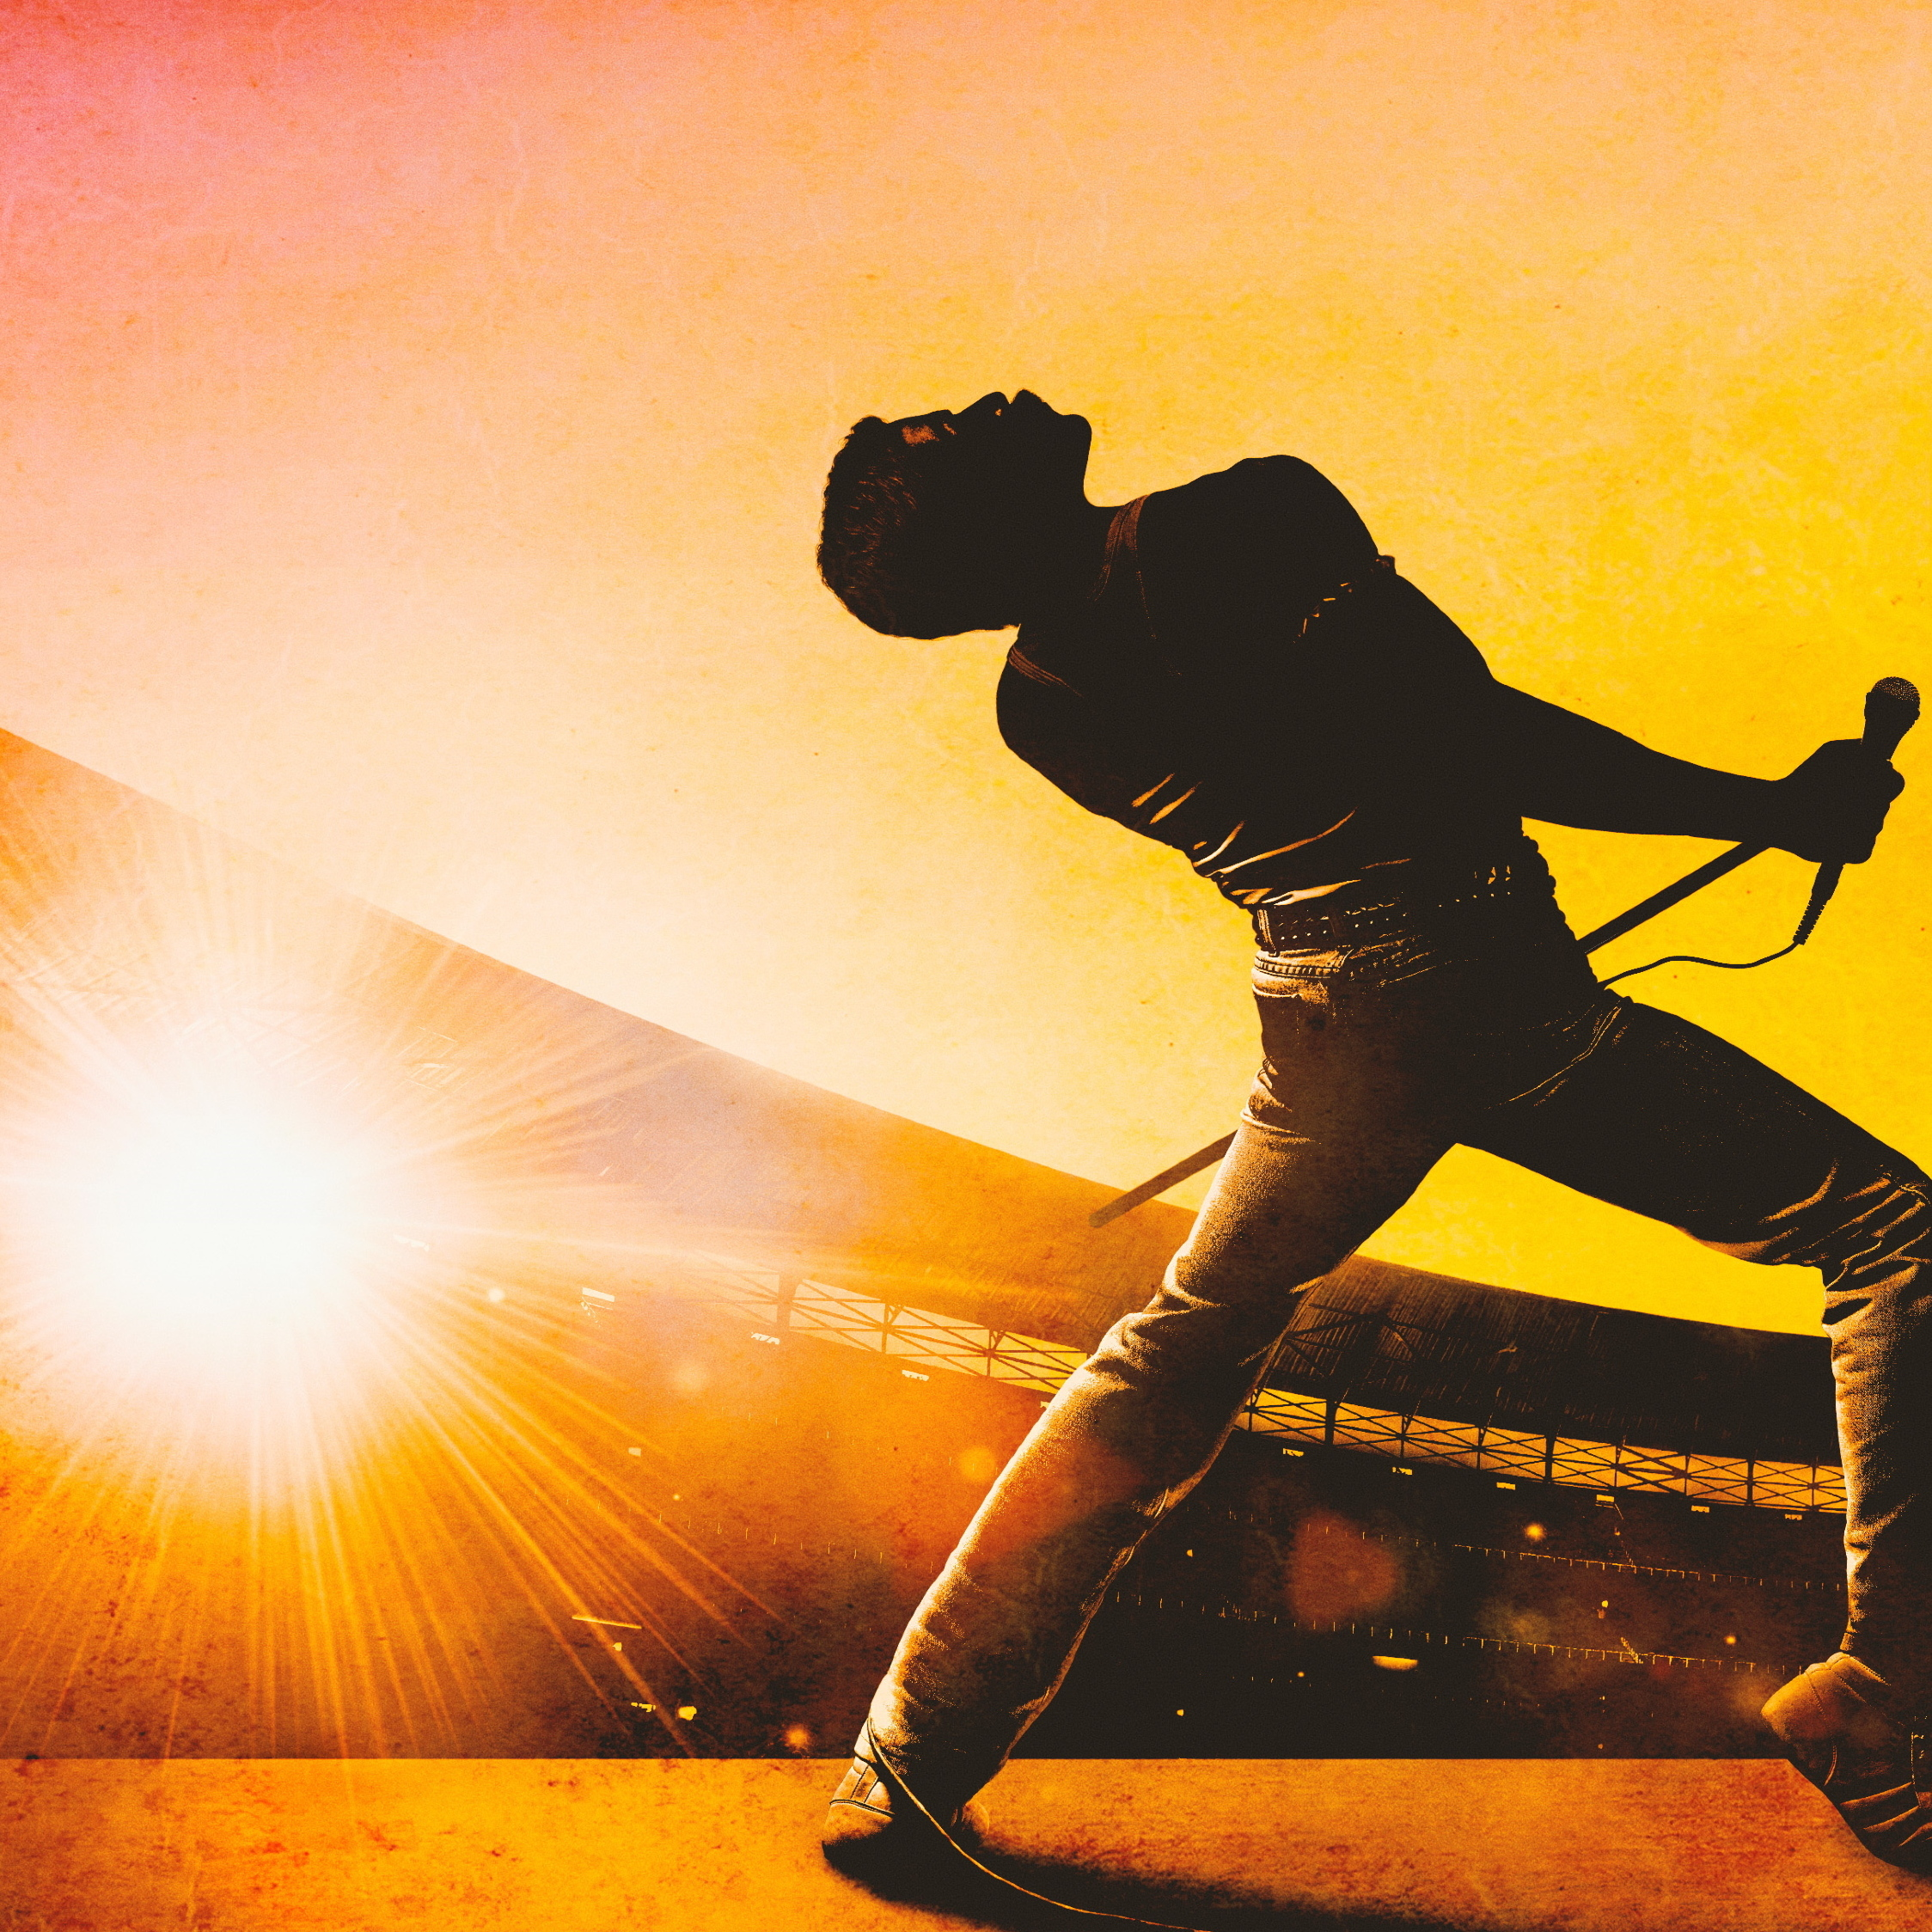 Download Bohemian Rhapsody 2018 Movie Fan Poster 240x320